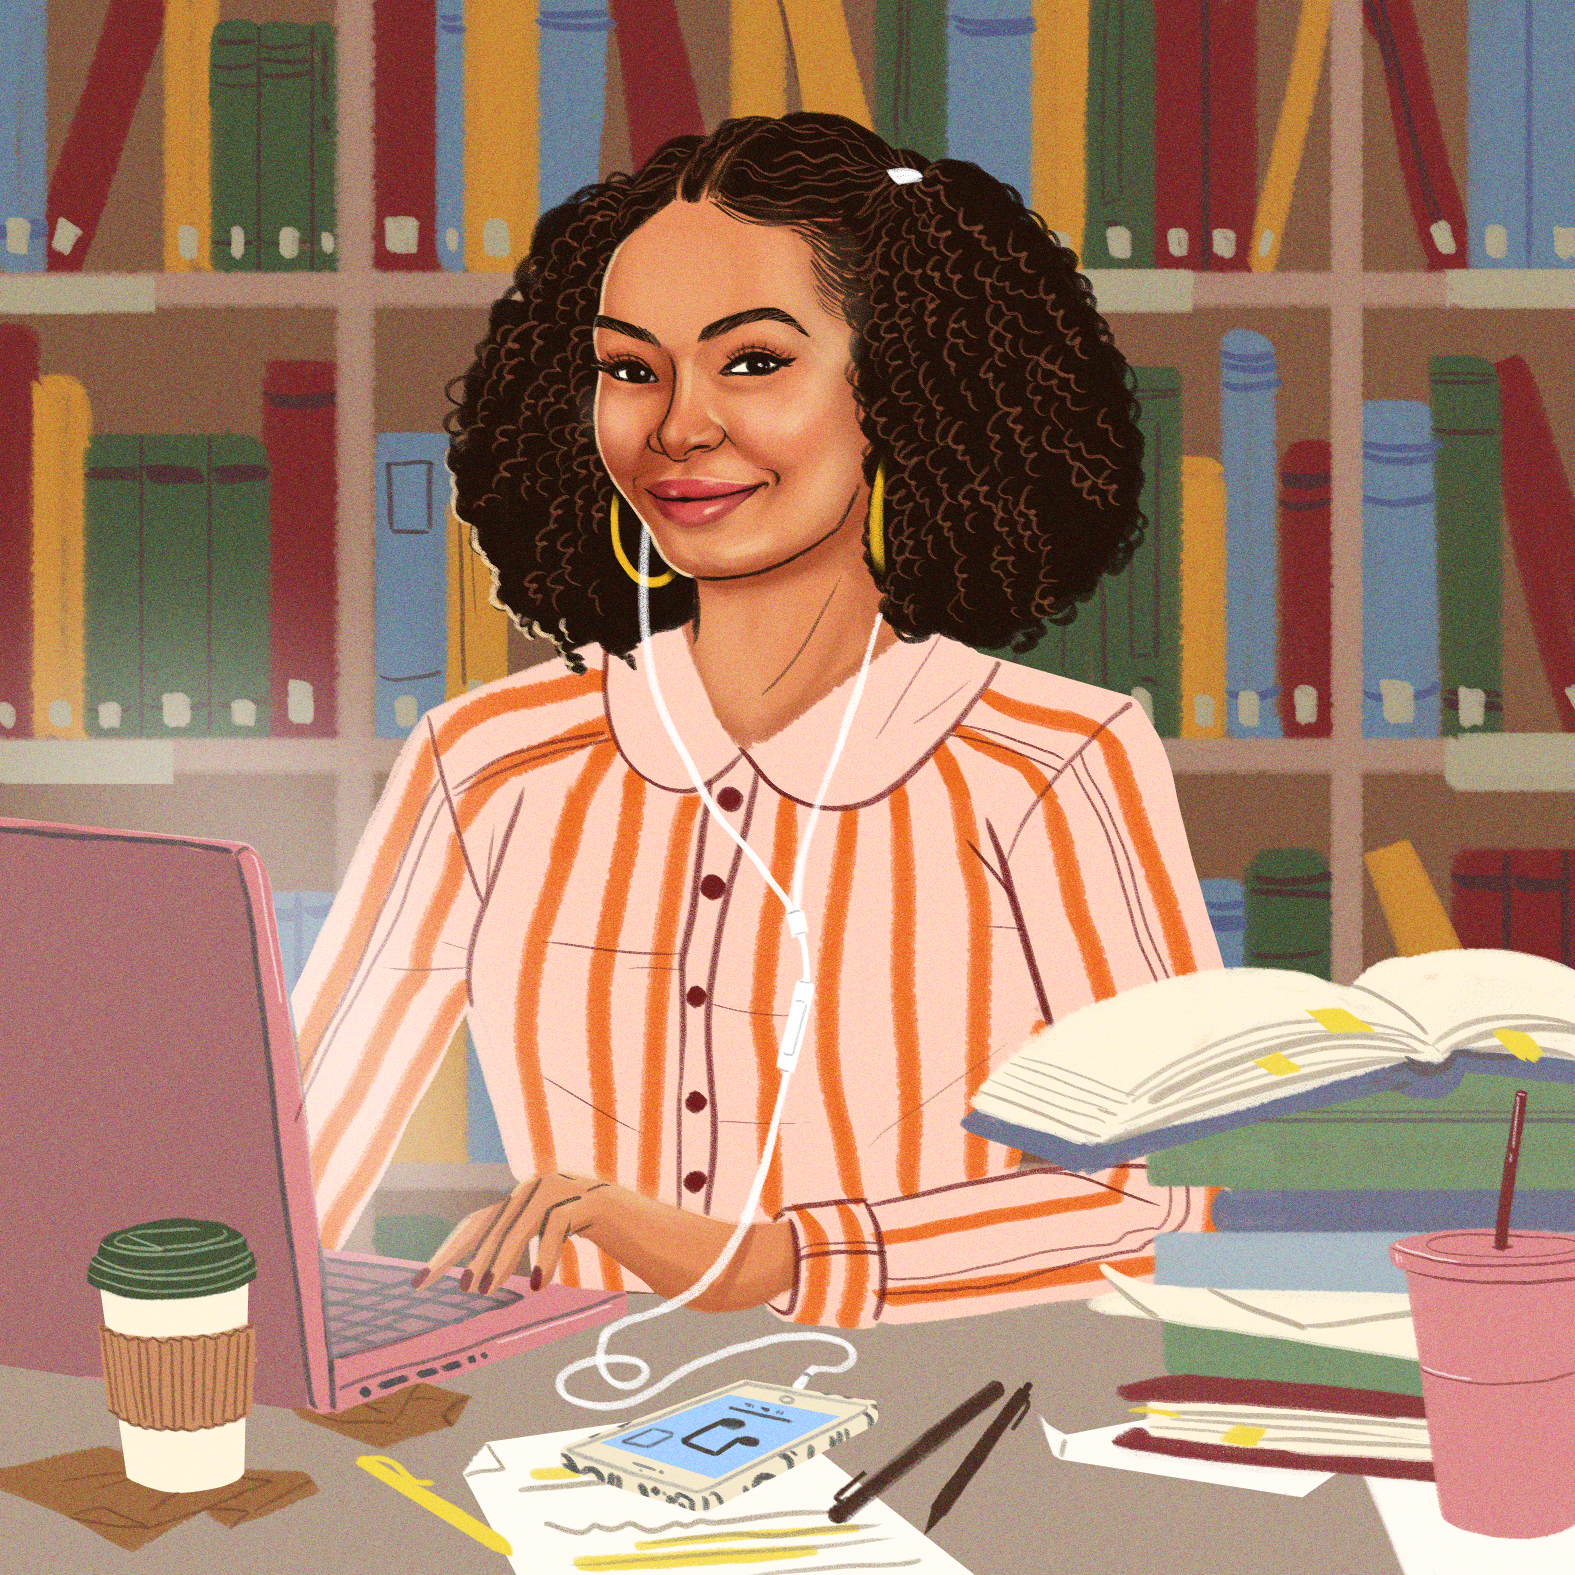 """Illustration of Yara Shahidi's Zoey from """"Grownish"""" for The Must List (January 11, 2019)"""